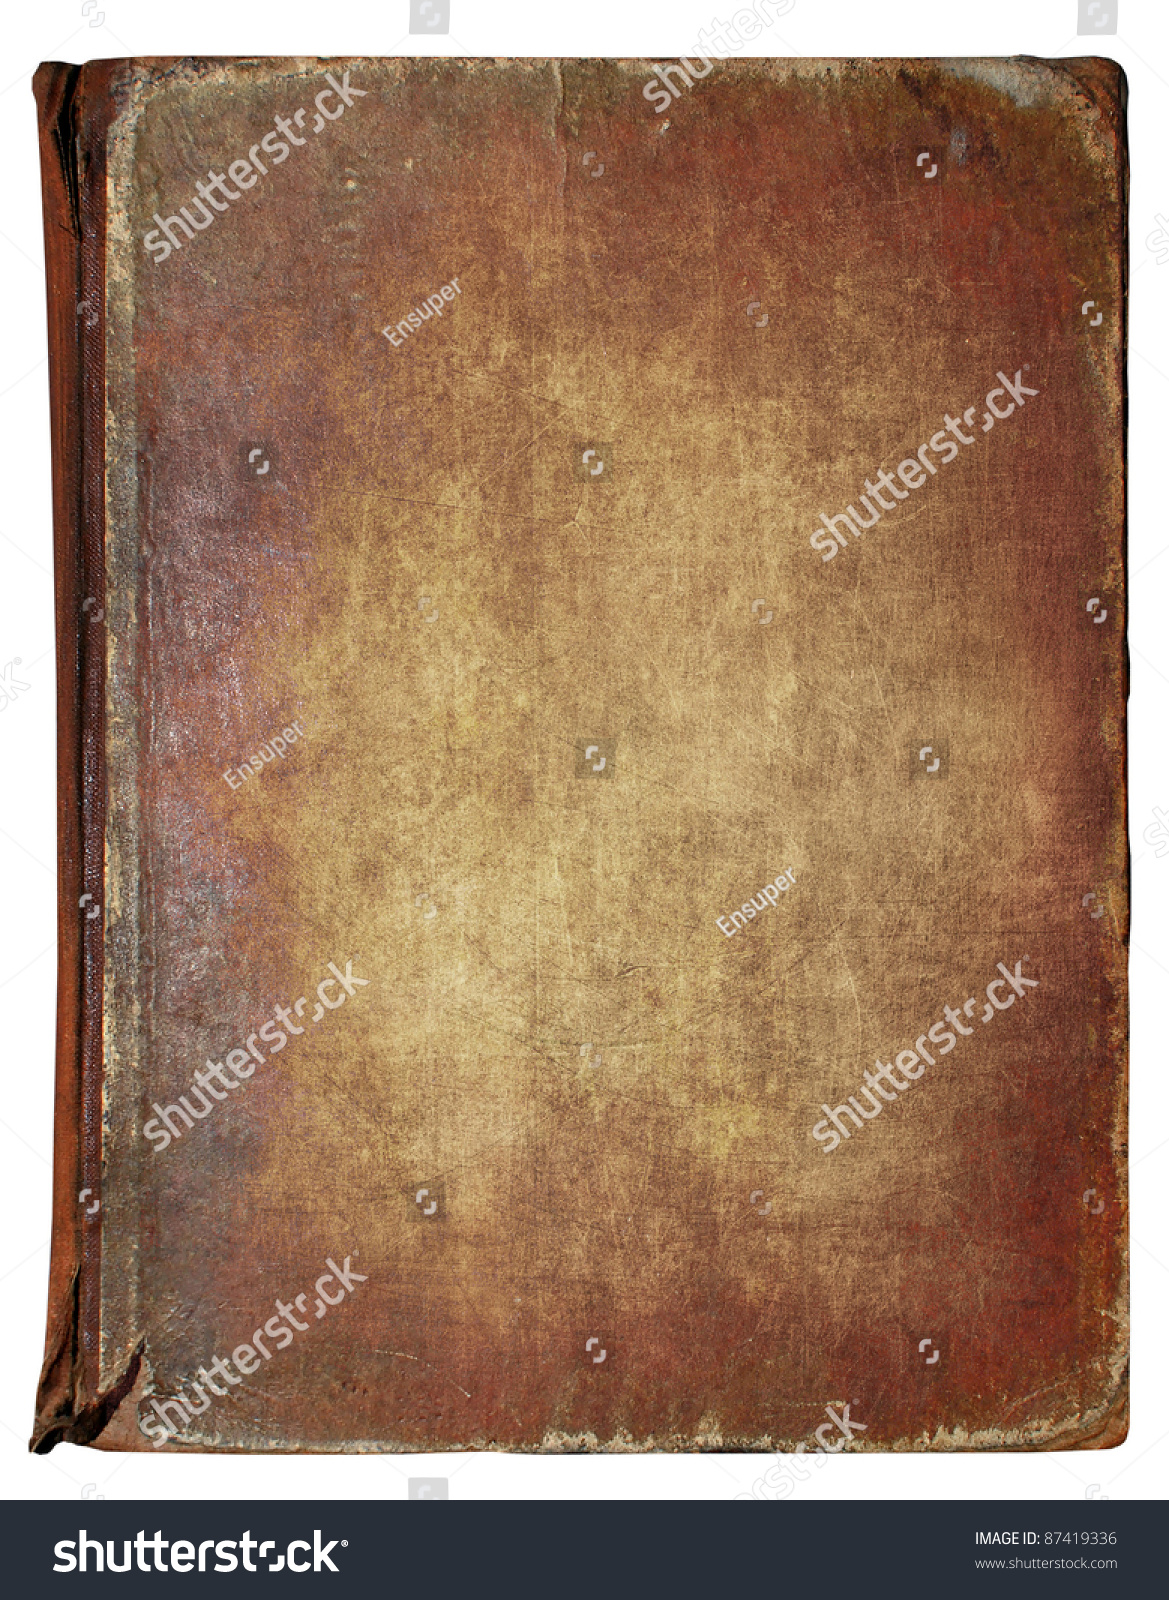 Old Book Cover Background ~ Old book cover vintage texture isolated stock photo